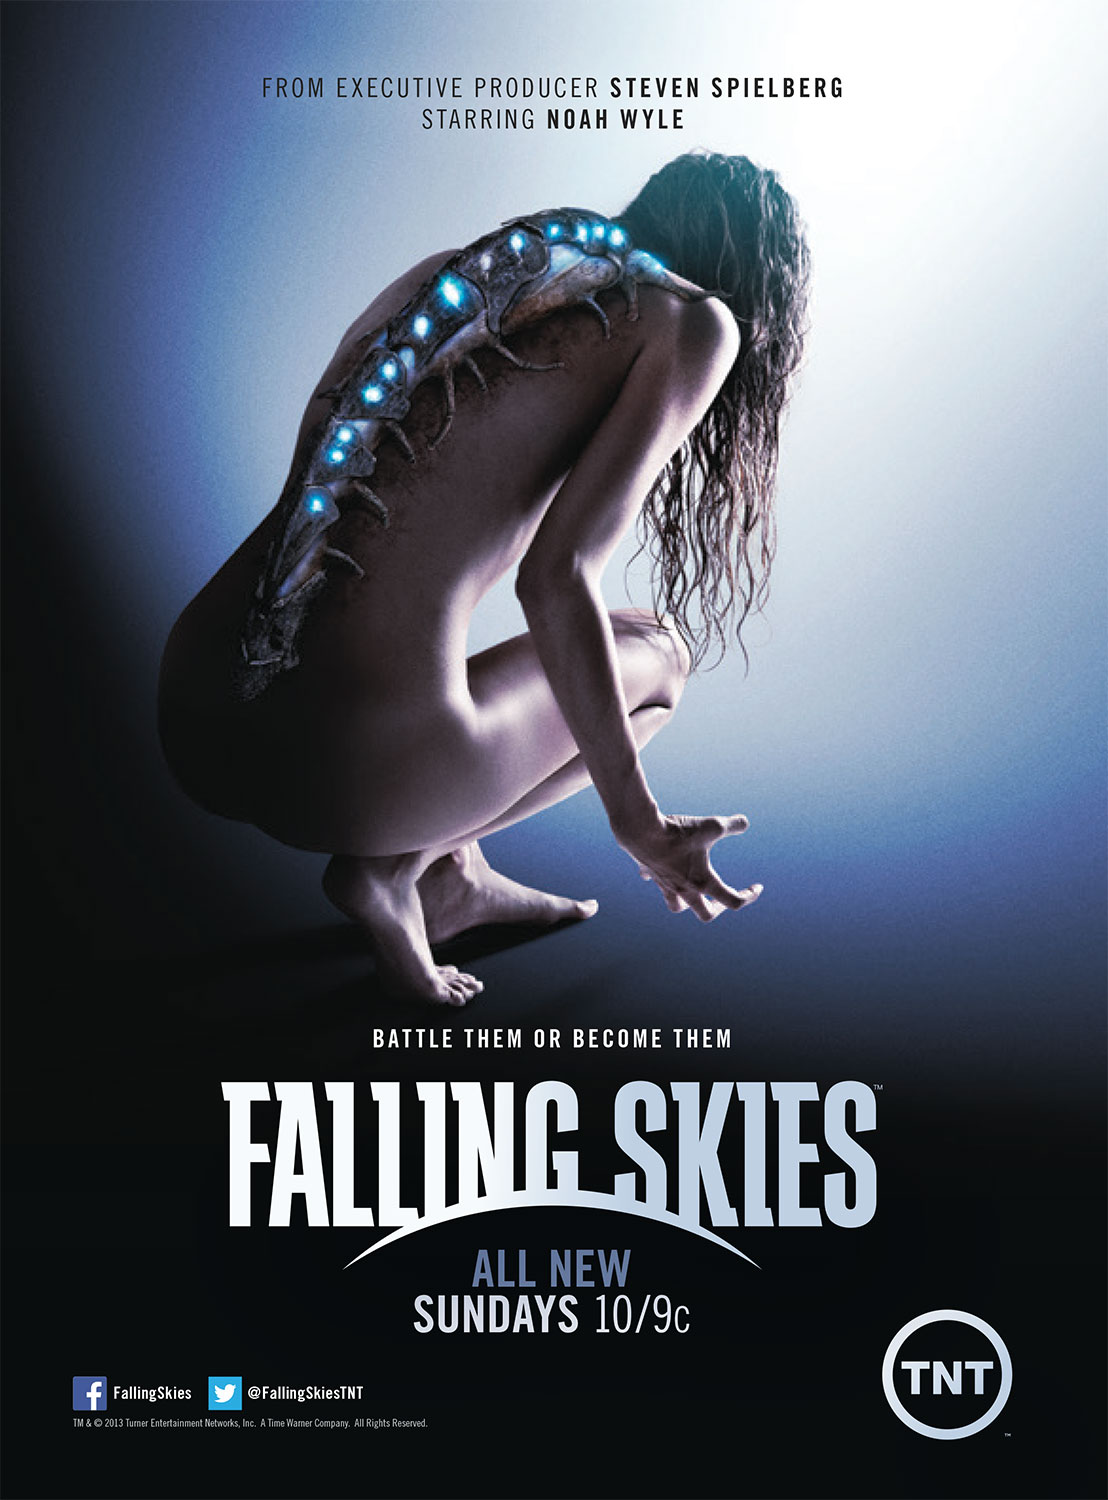 Falling Skies Season 3 Poster - Falling Skies Photo (34607753) - Fanpop